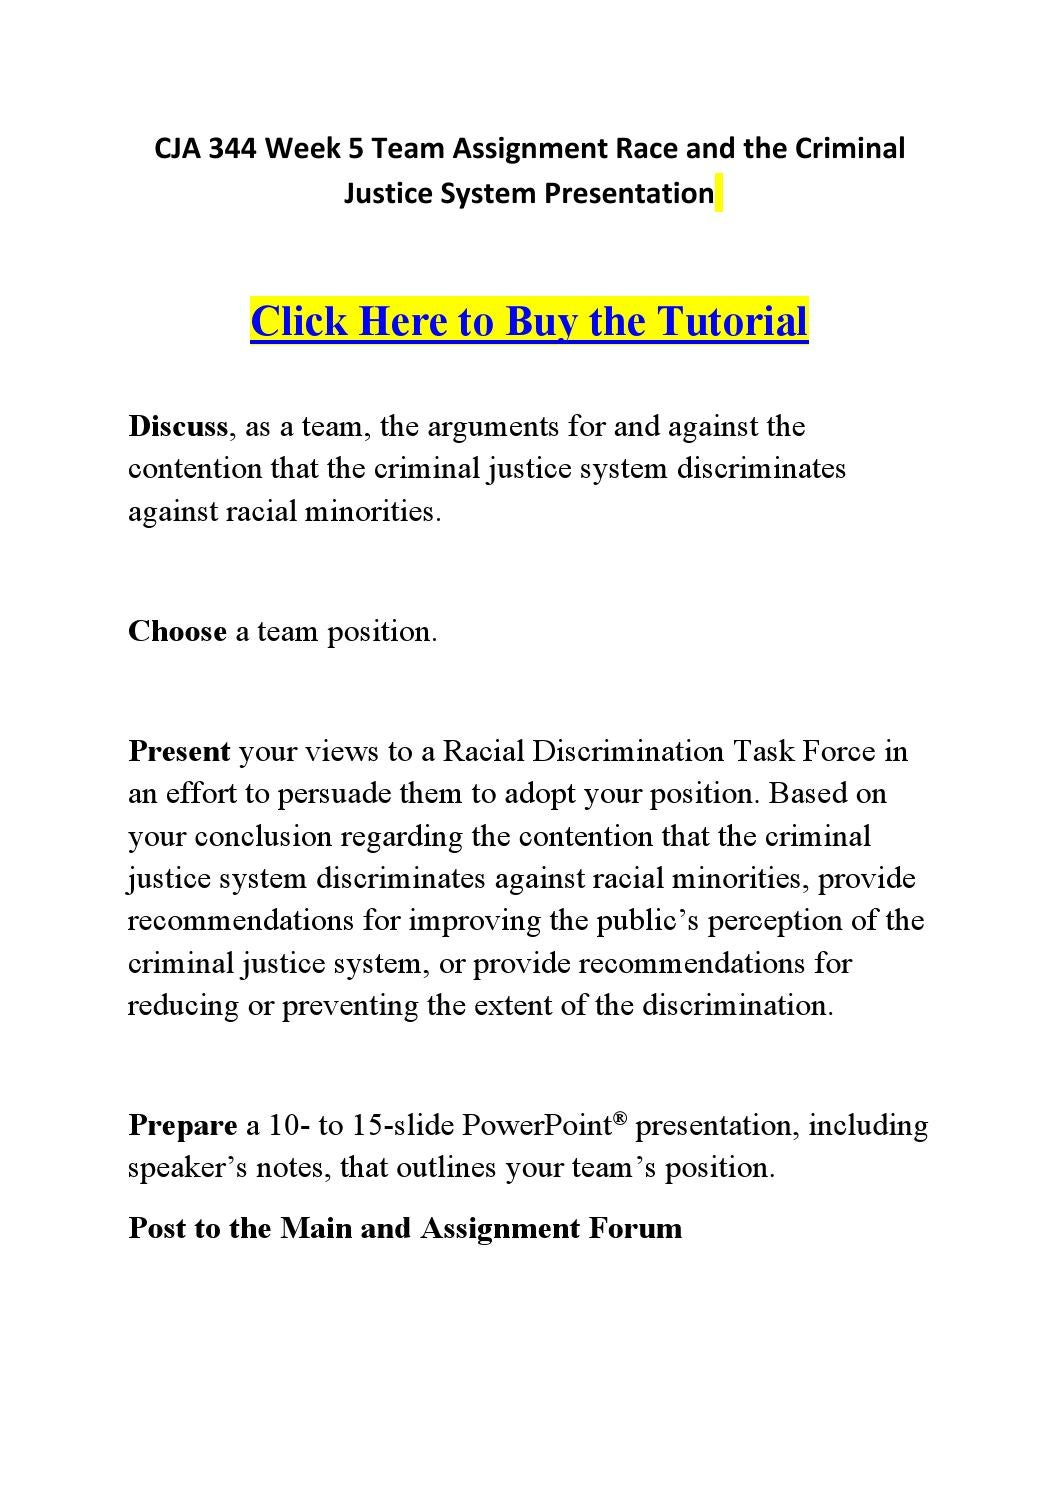 racism in the criminal justice system pdf